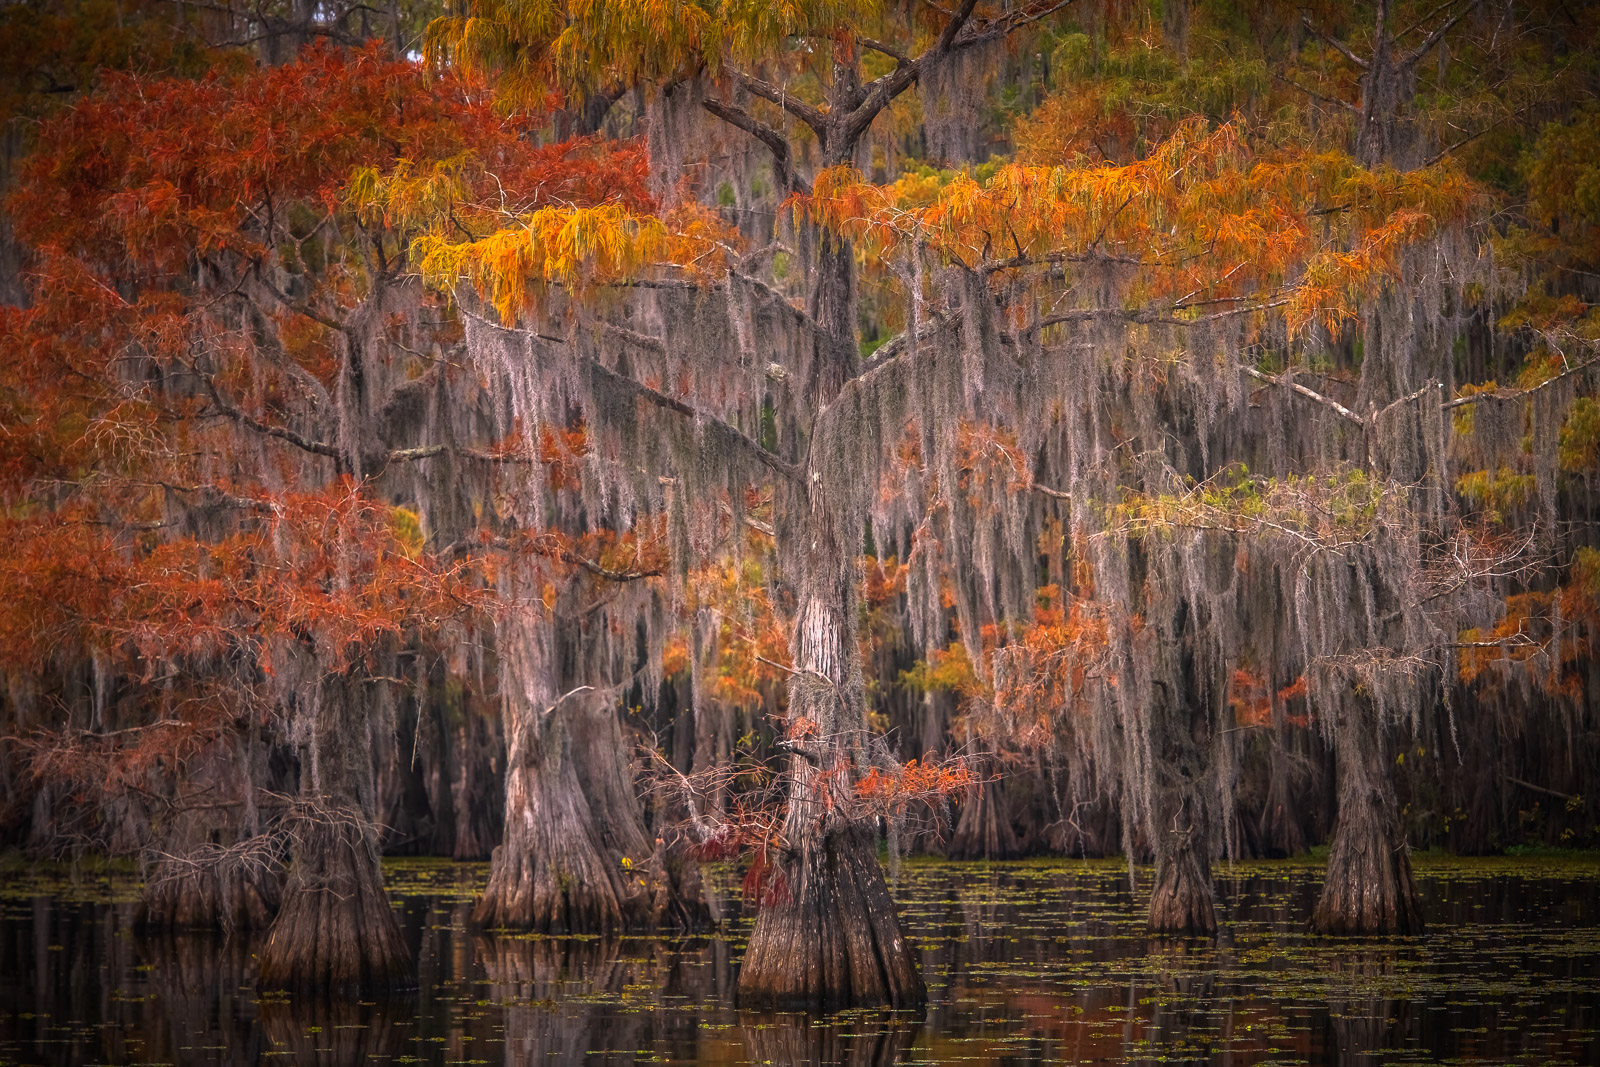 Limited Edition of 50 The bayou and swamps of Caddo Lake on the Texas and Louisiana border is one of the most hauntingly beautiful...